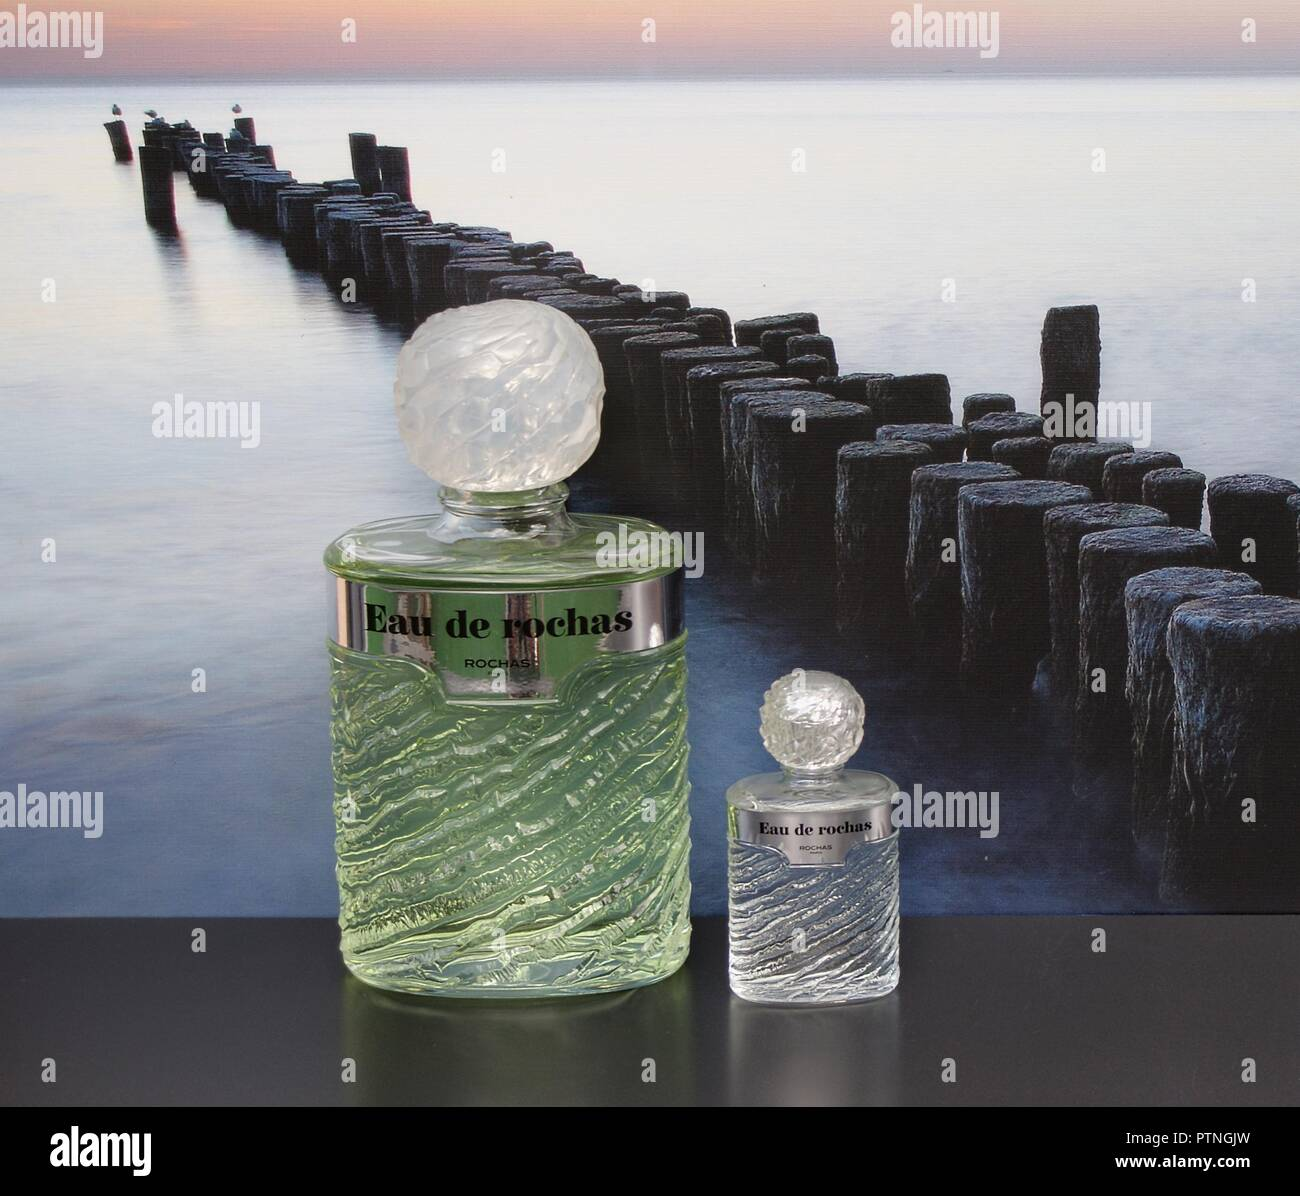 Eau de Rochas, fragrance for ladies, large perfume bottle next to a commercial perfume bottle in front of the picture of a groyne in the sea - Stock Image